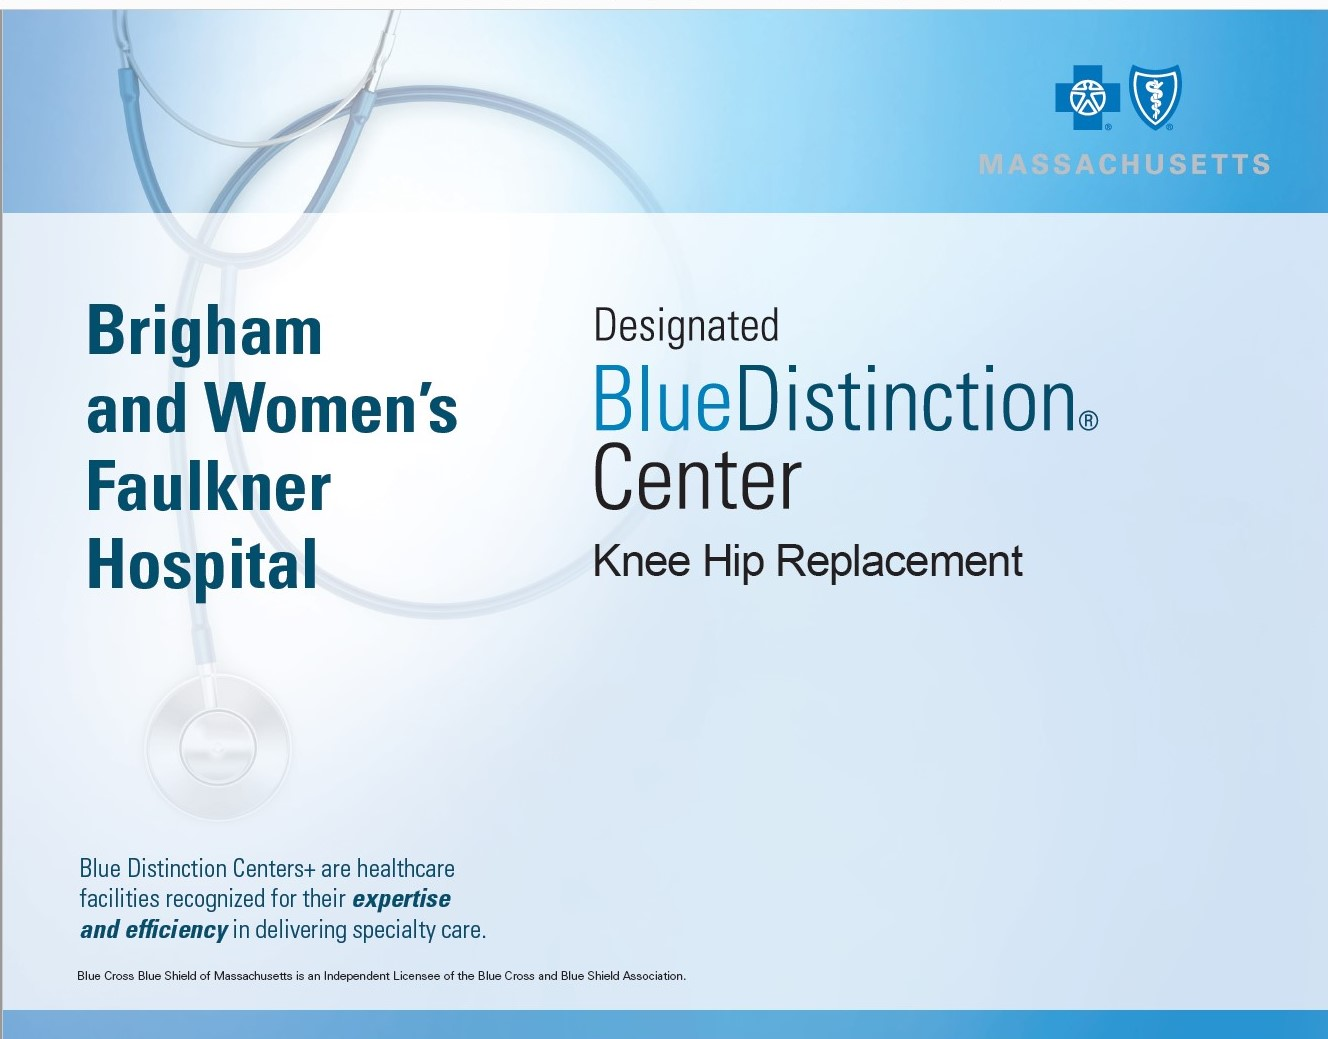 Blue Distinction Center designation for knee and hip replacement surgeries